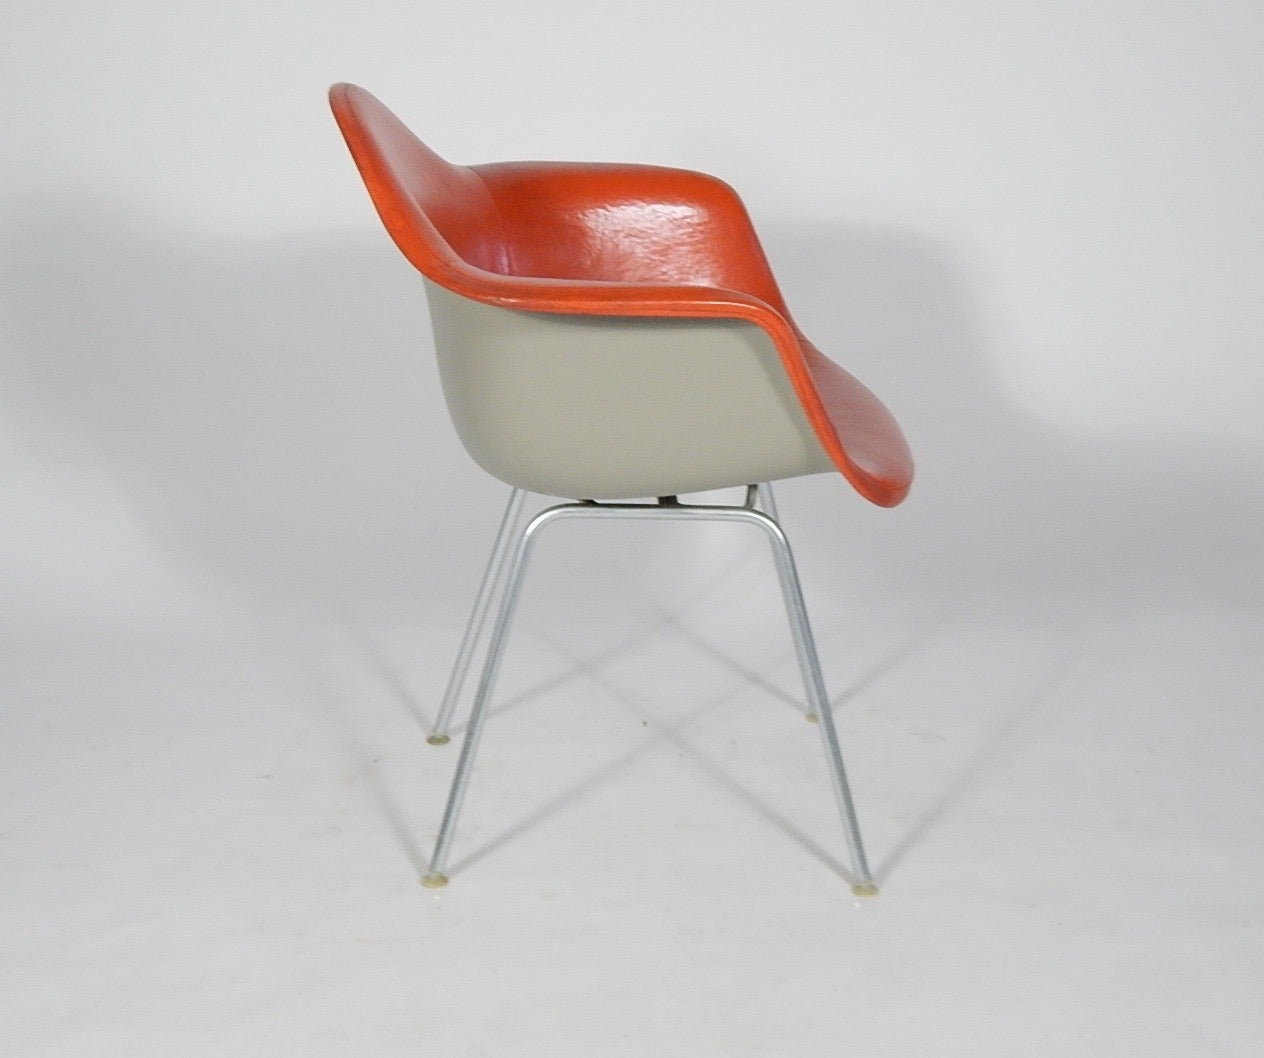 Charles and ray eames naugahyde shell chair for herman miller 1960s at 1stdibs - Herman miller bucket chair ...